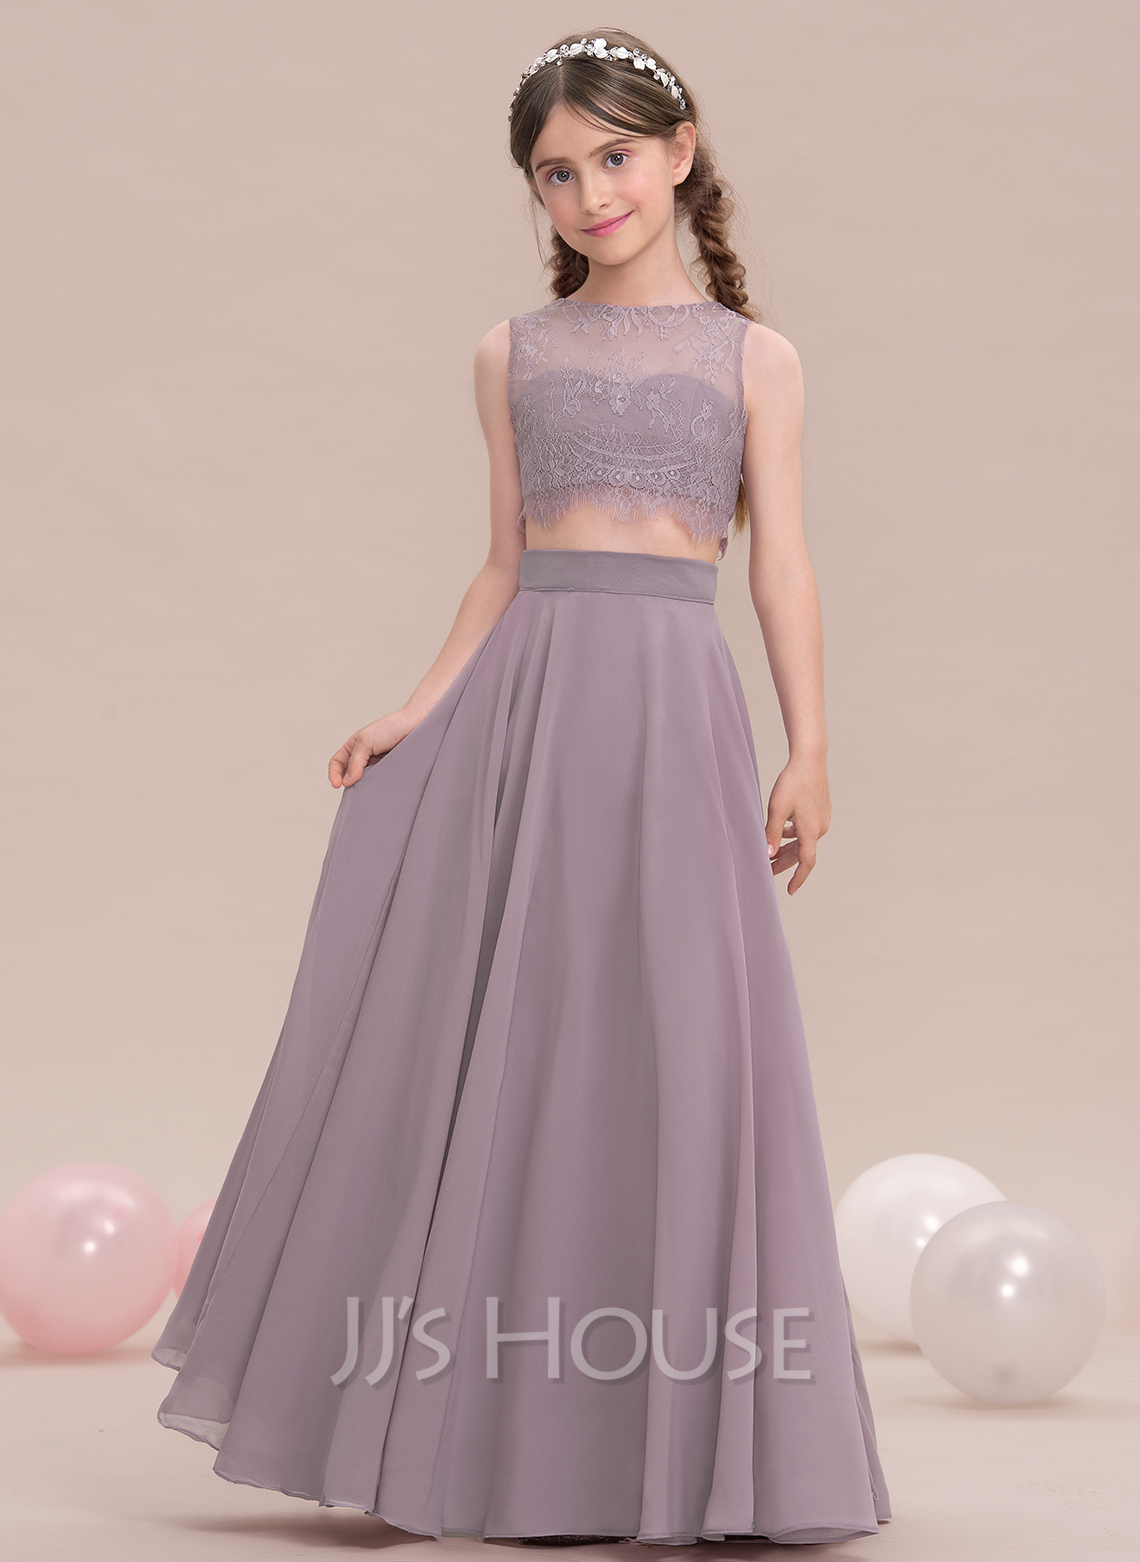 A Line Princess Scoop Neck Floor Length Chiffon Junior Bridesmaid Dress Loading Zoom